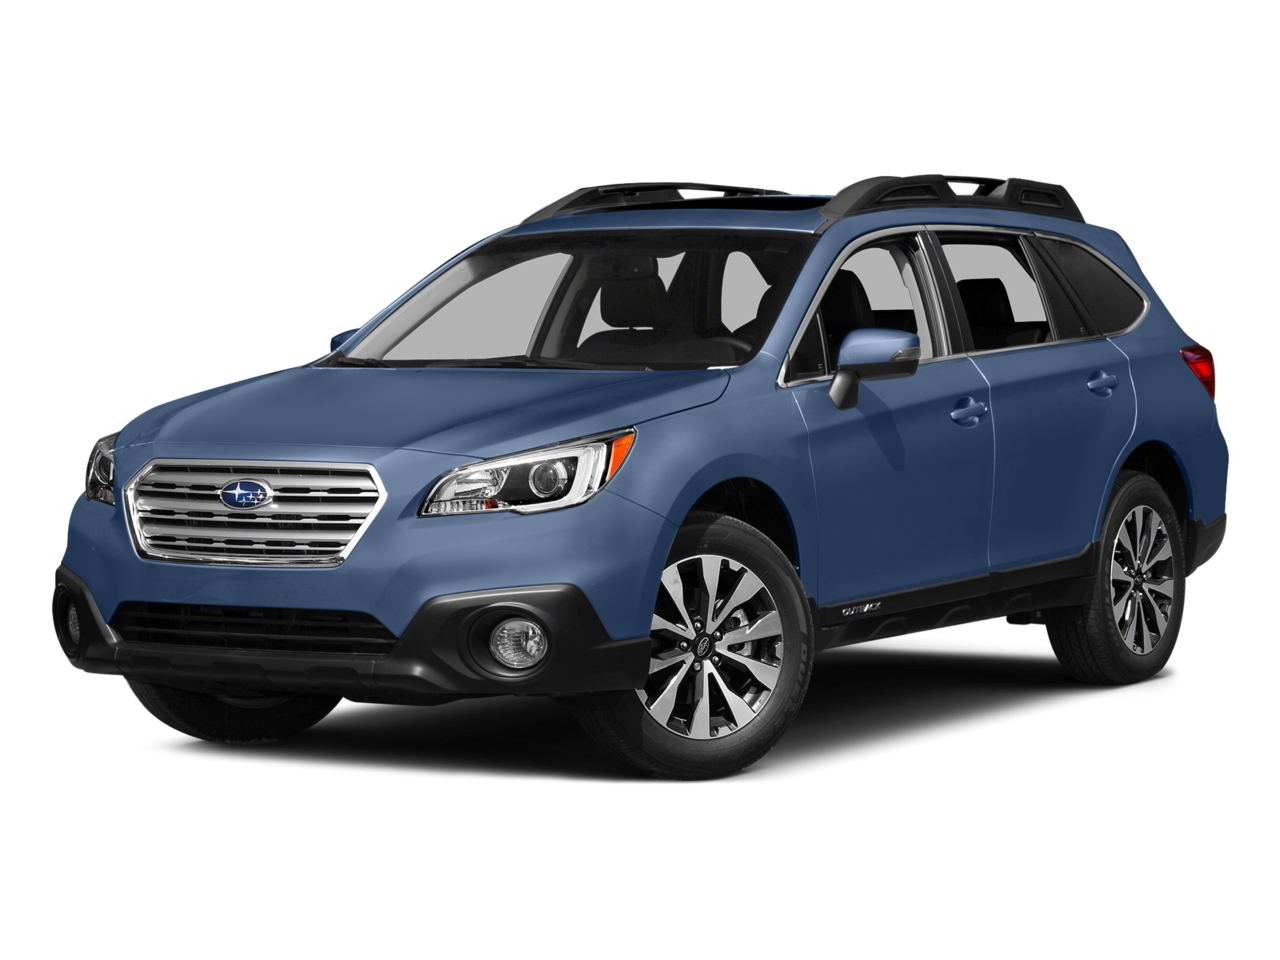 2015 subaru outback pine grove oretech. Black Bedroom Furniture Sets. Home Design Ideas